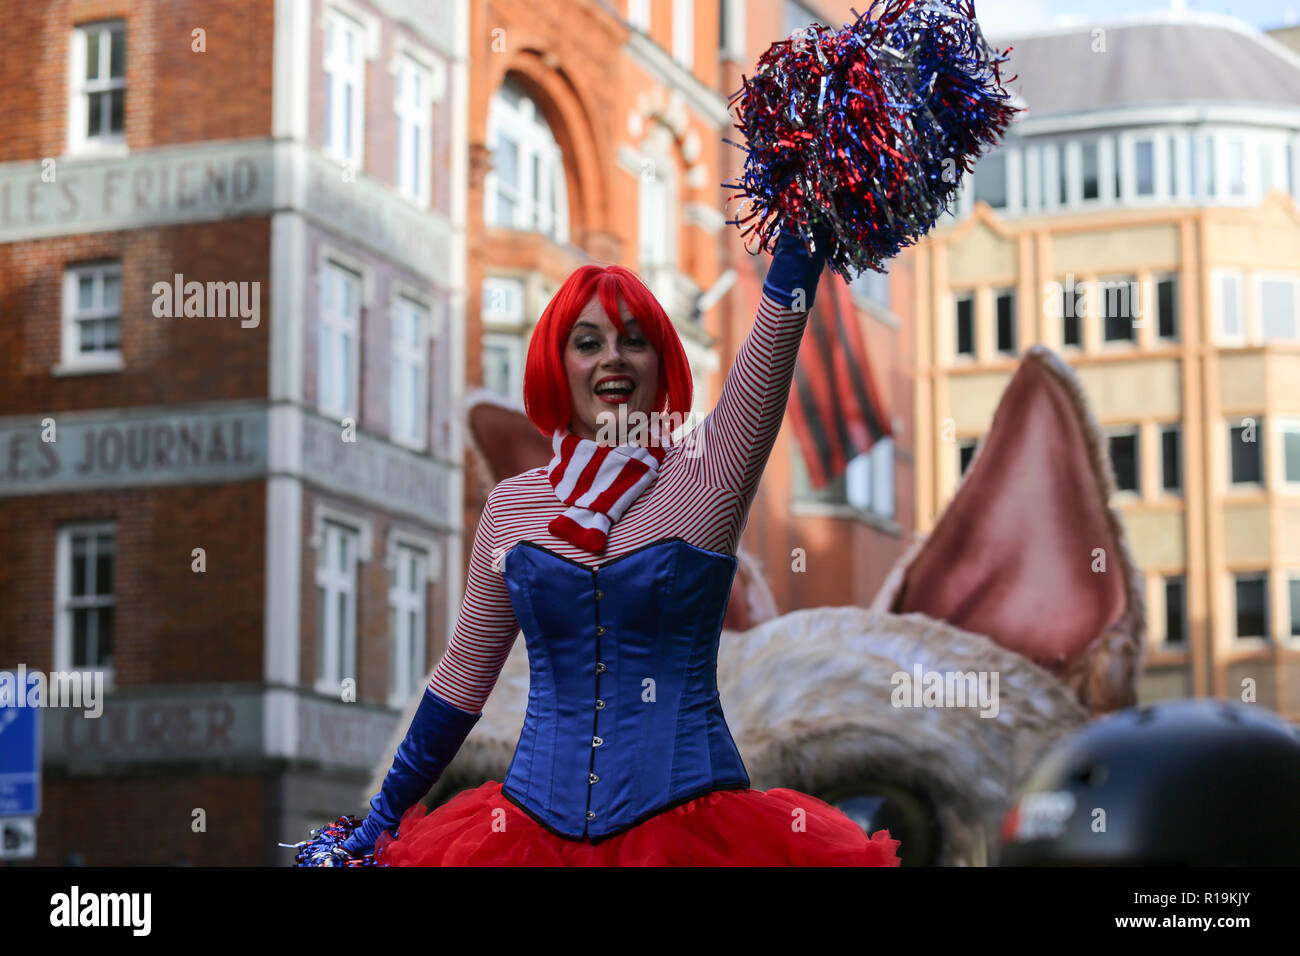 London, UK. 10th Nov, 2018. The 800 year-old tradition sees a procession march a three-mile route from Bank and Aldwych. Penelope Barritt/Alamy Live News Stock Photo